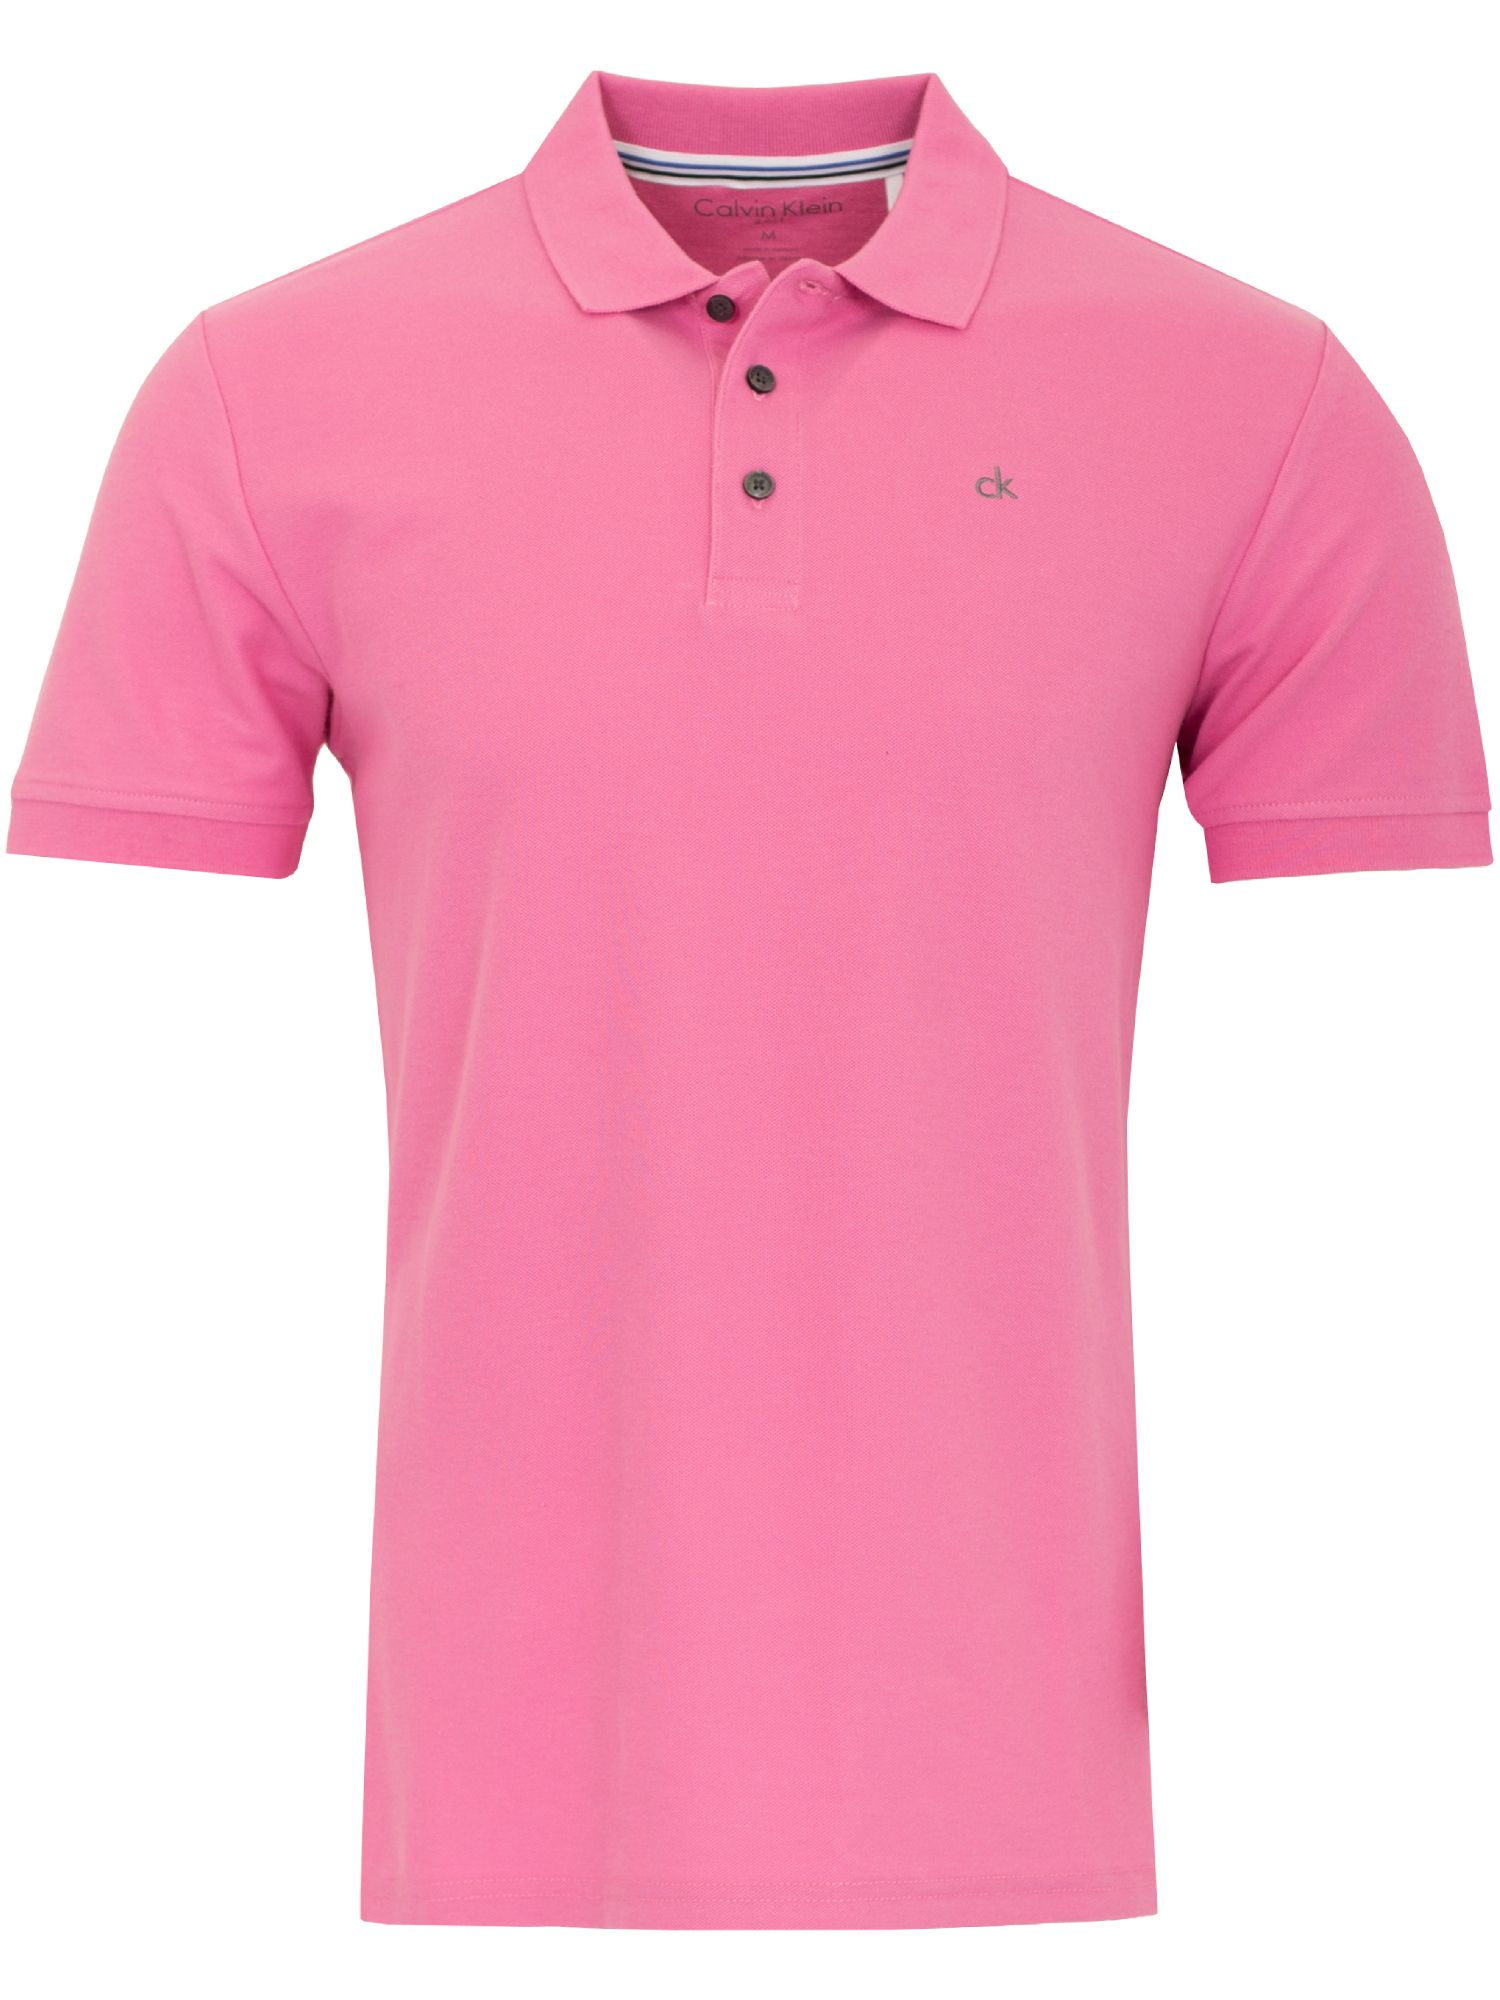 Men's Calvin Klein Golf Midtown Radical Cotton Polo, Pink